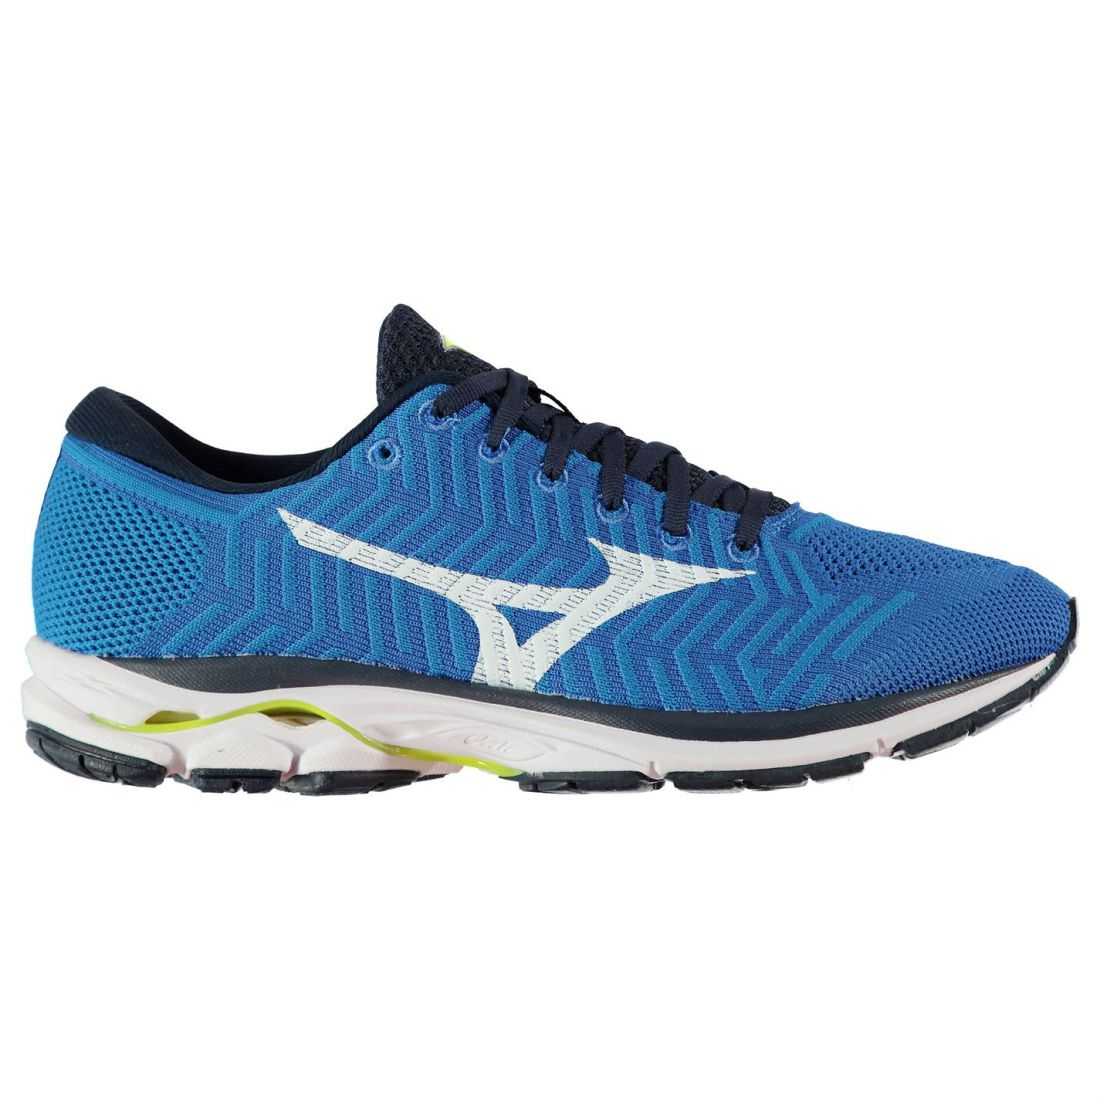 Mizuno Wave Knit R1 Running shoes Mens Gents Road